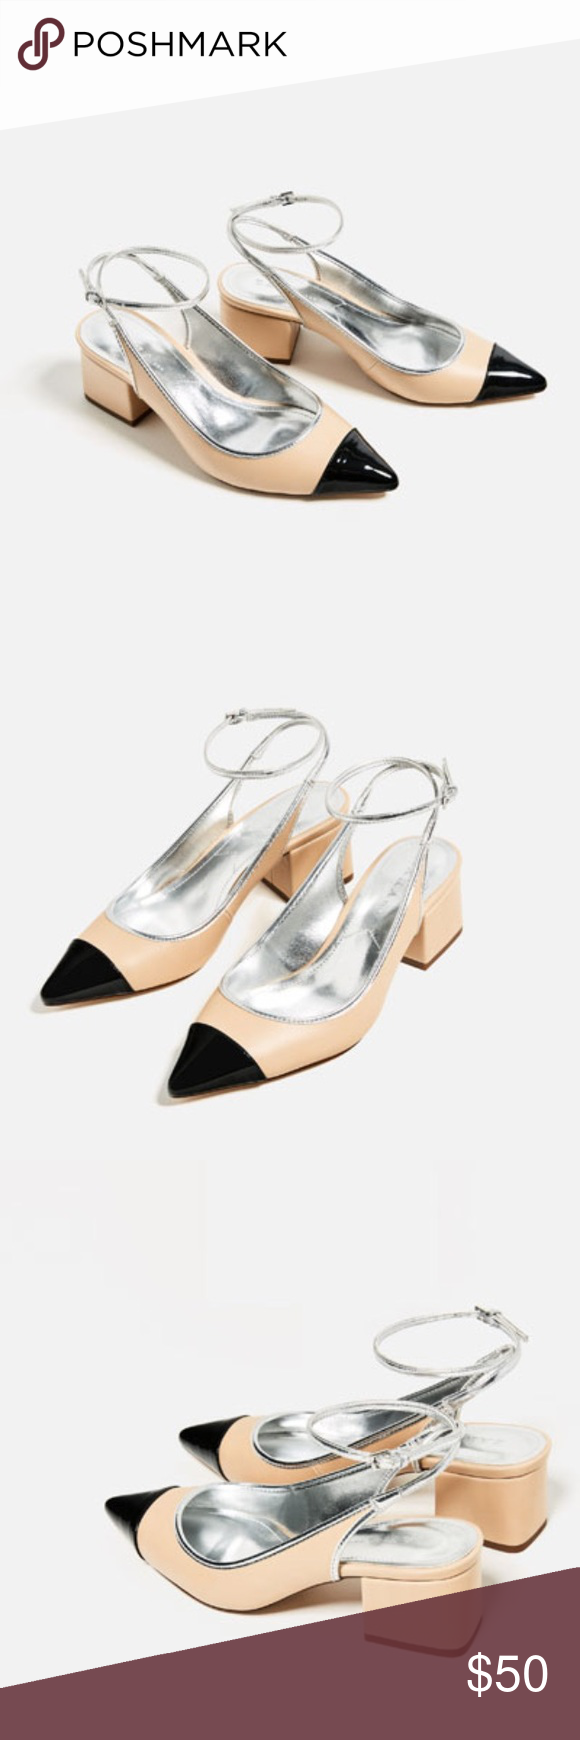 dd40313e093 Contrast Slingback Heels - ZARA Heel shoes in contrasting colors  (beige black). Block heel. Strap and buckle fastening at the back. NWT.